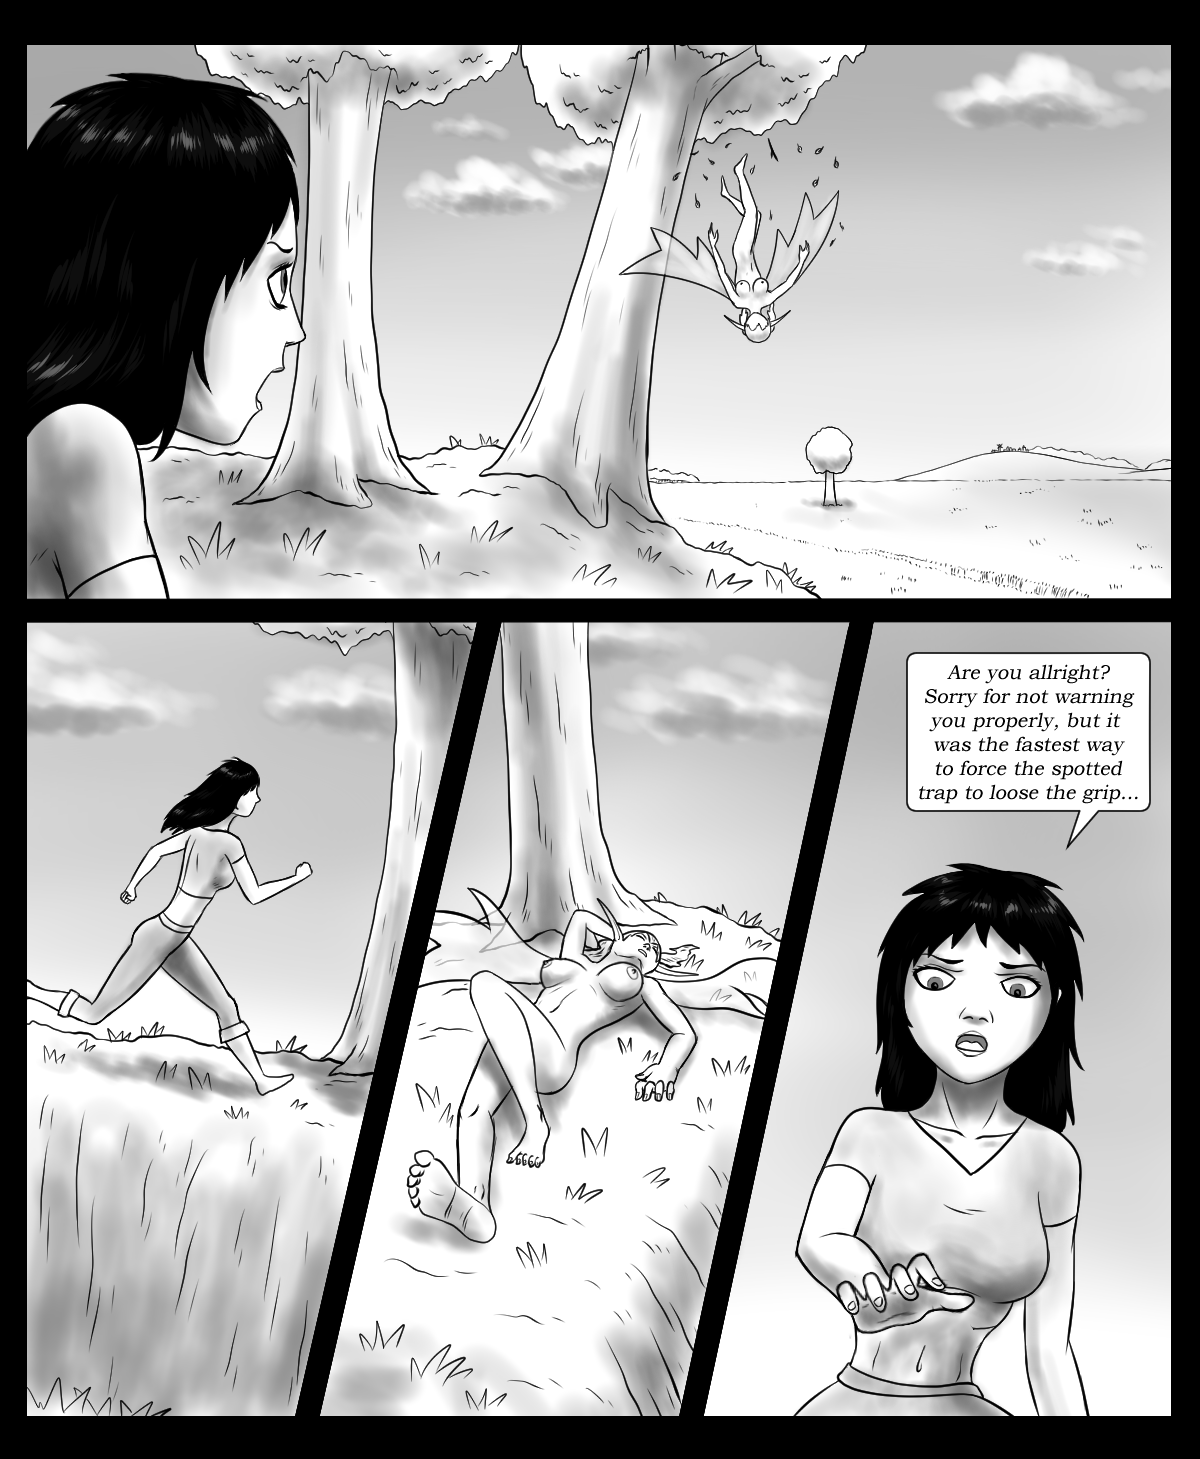 Page 24 - The fall of the victim